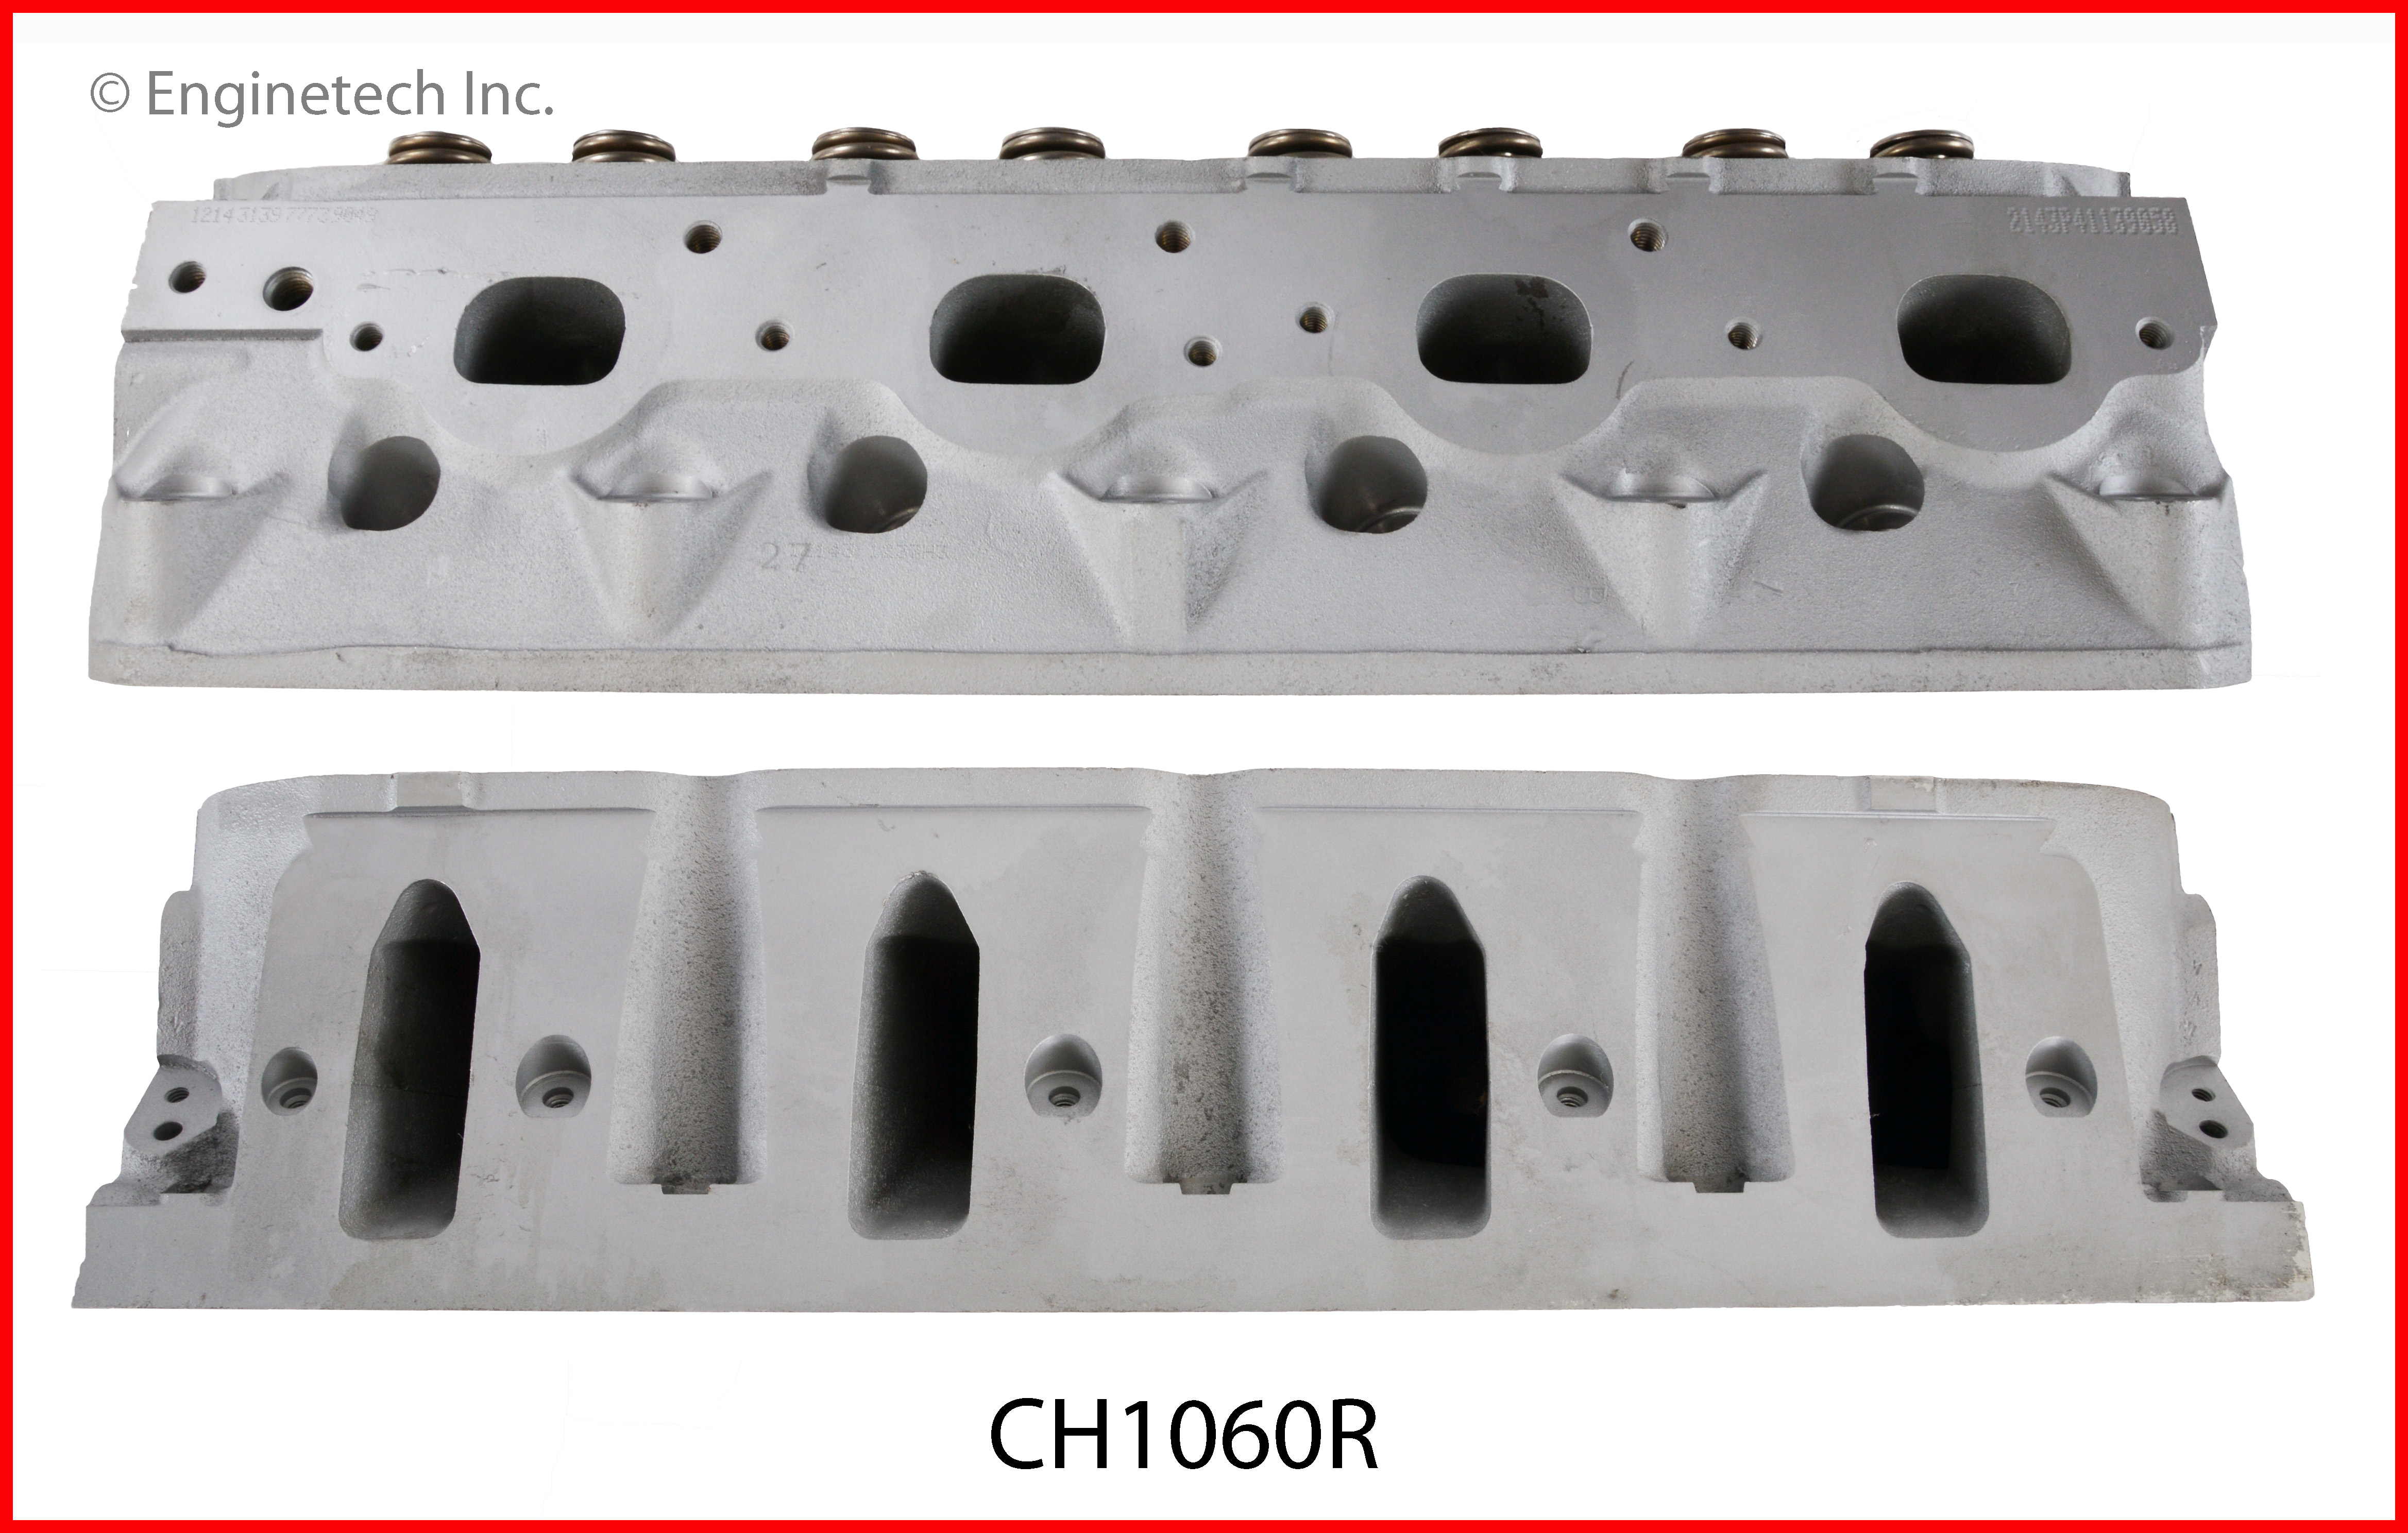 CH1060R Cylinder Head - Complete Enginetech